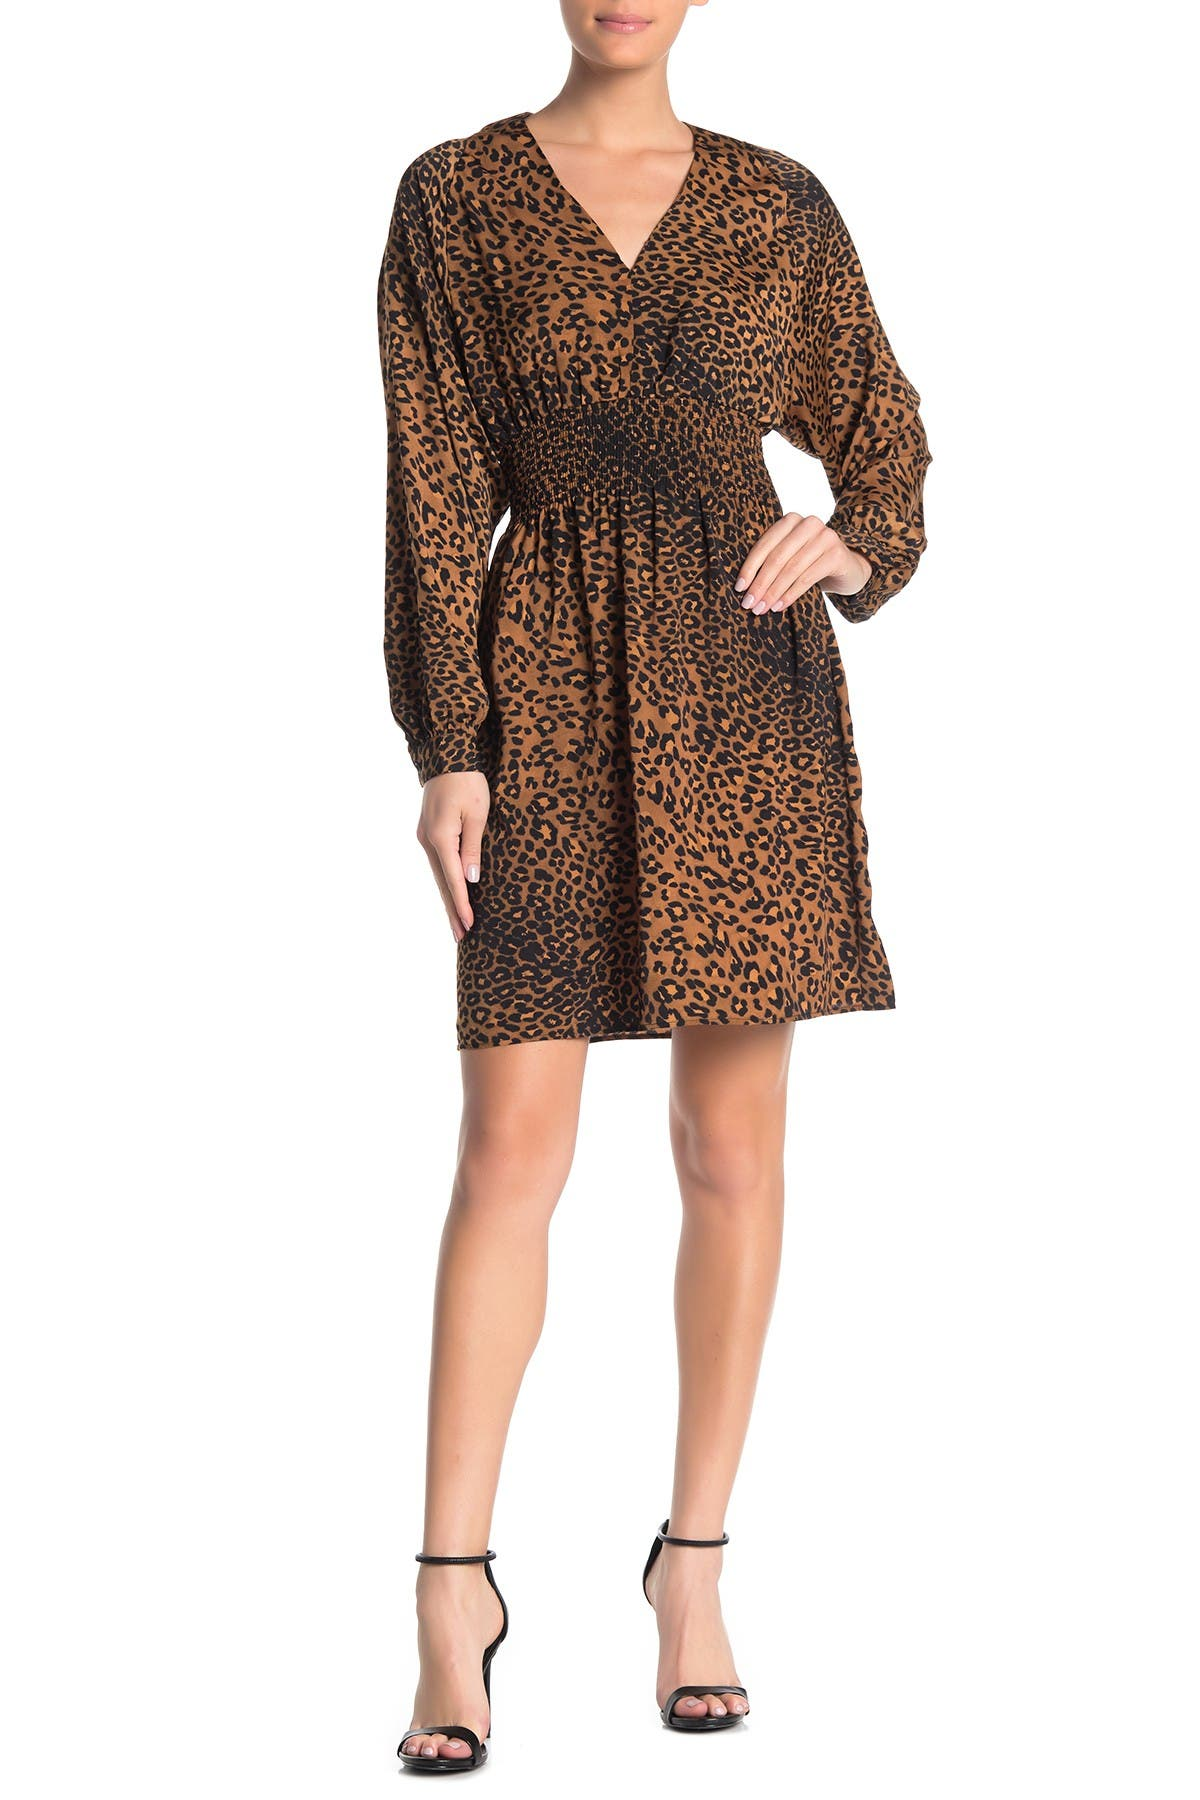 Image of ELAN Leopard Print Smocked Waist Dress